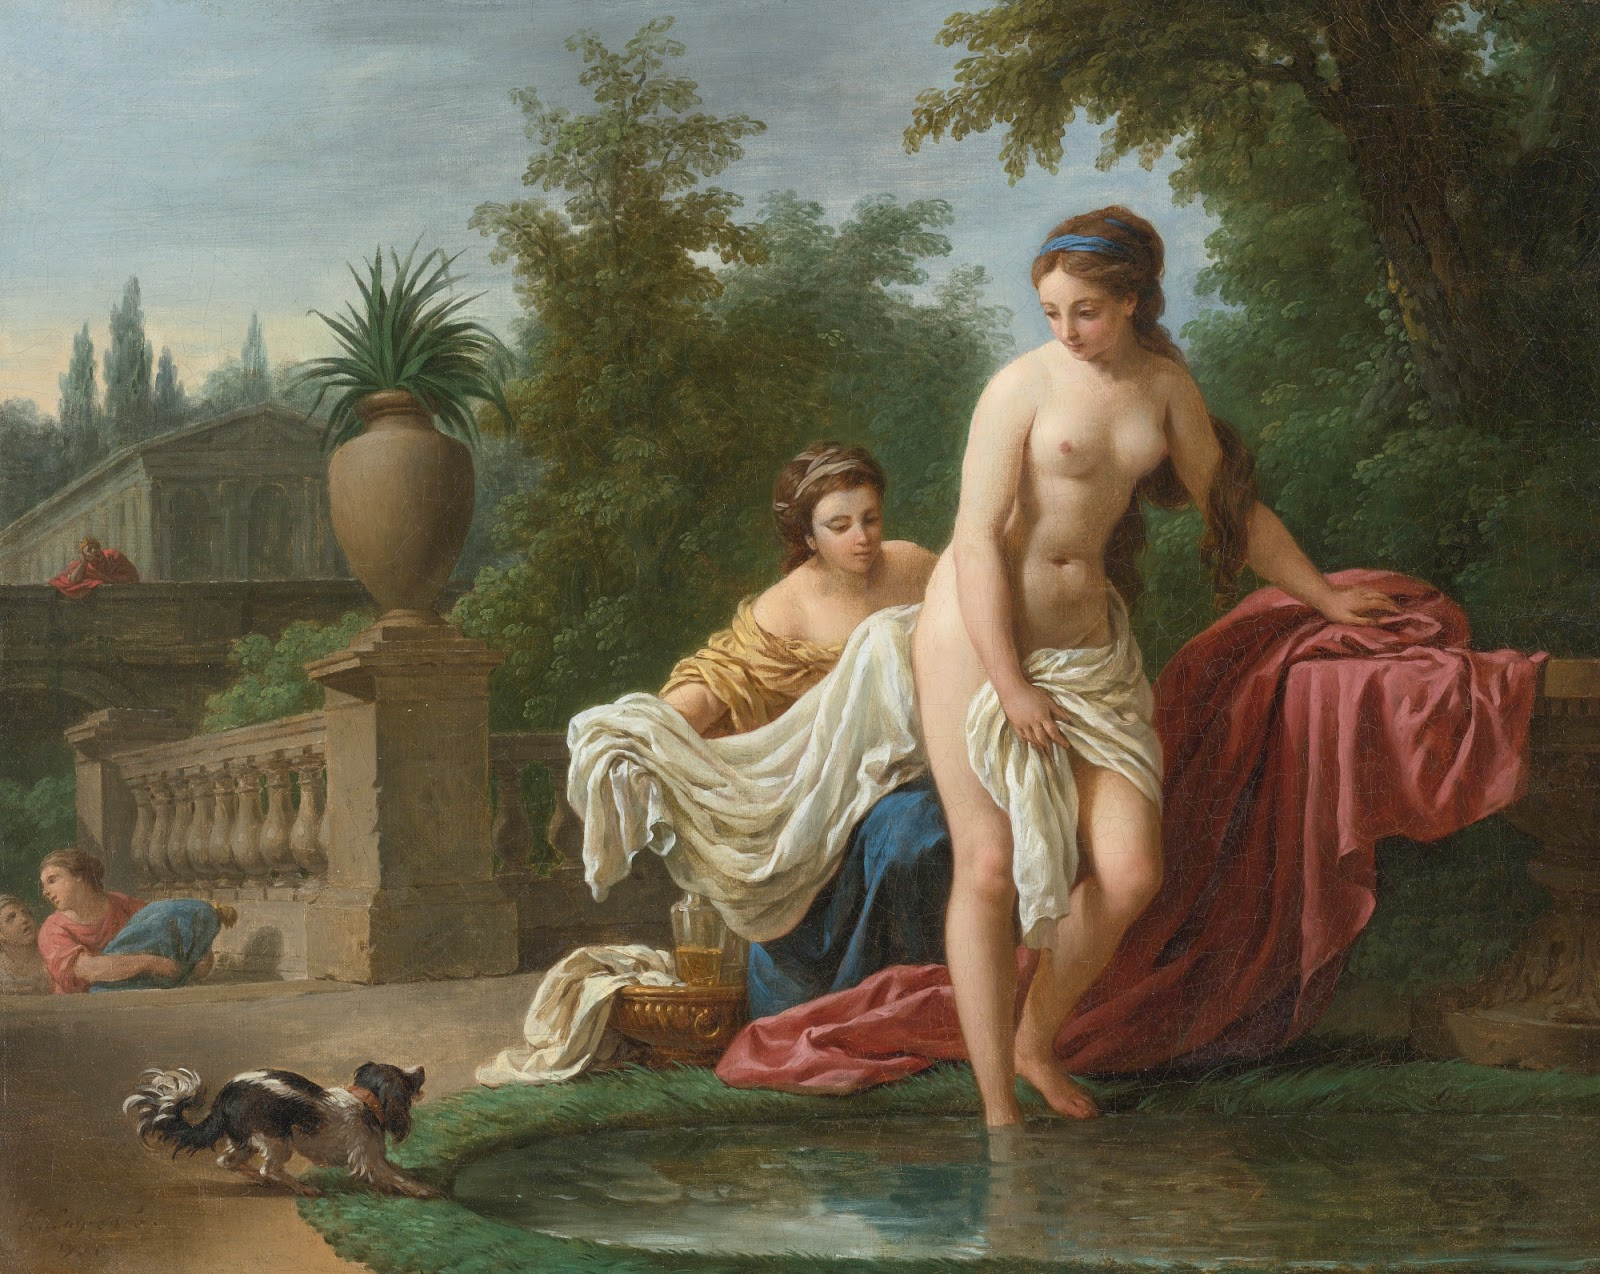 DAVID AND BATHSHEBA 1770